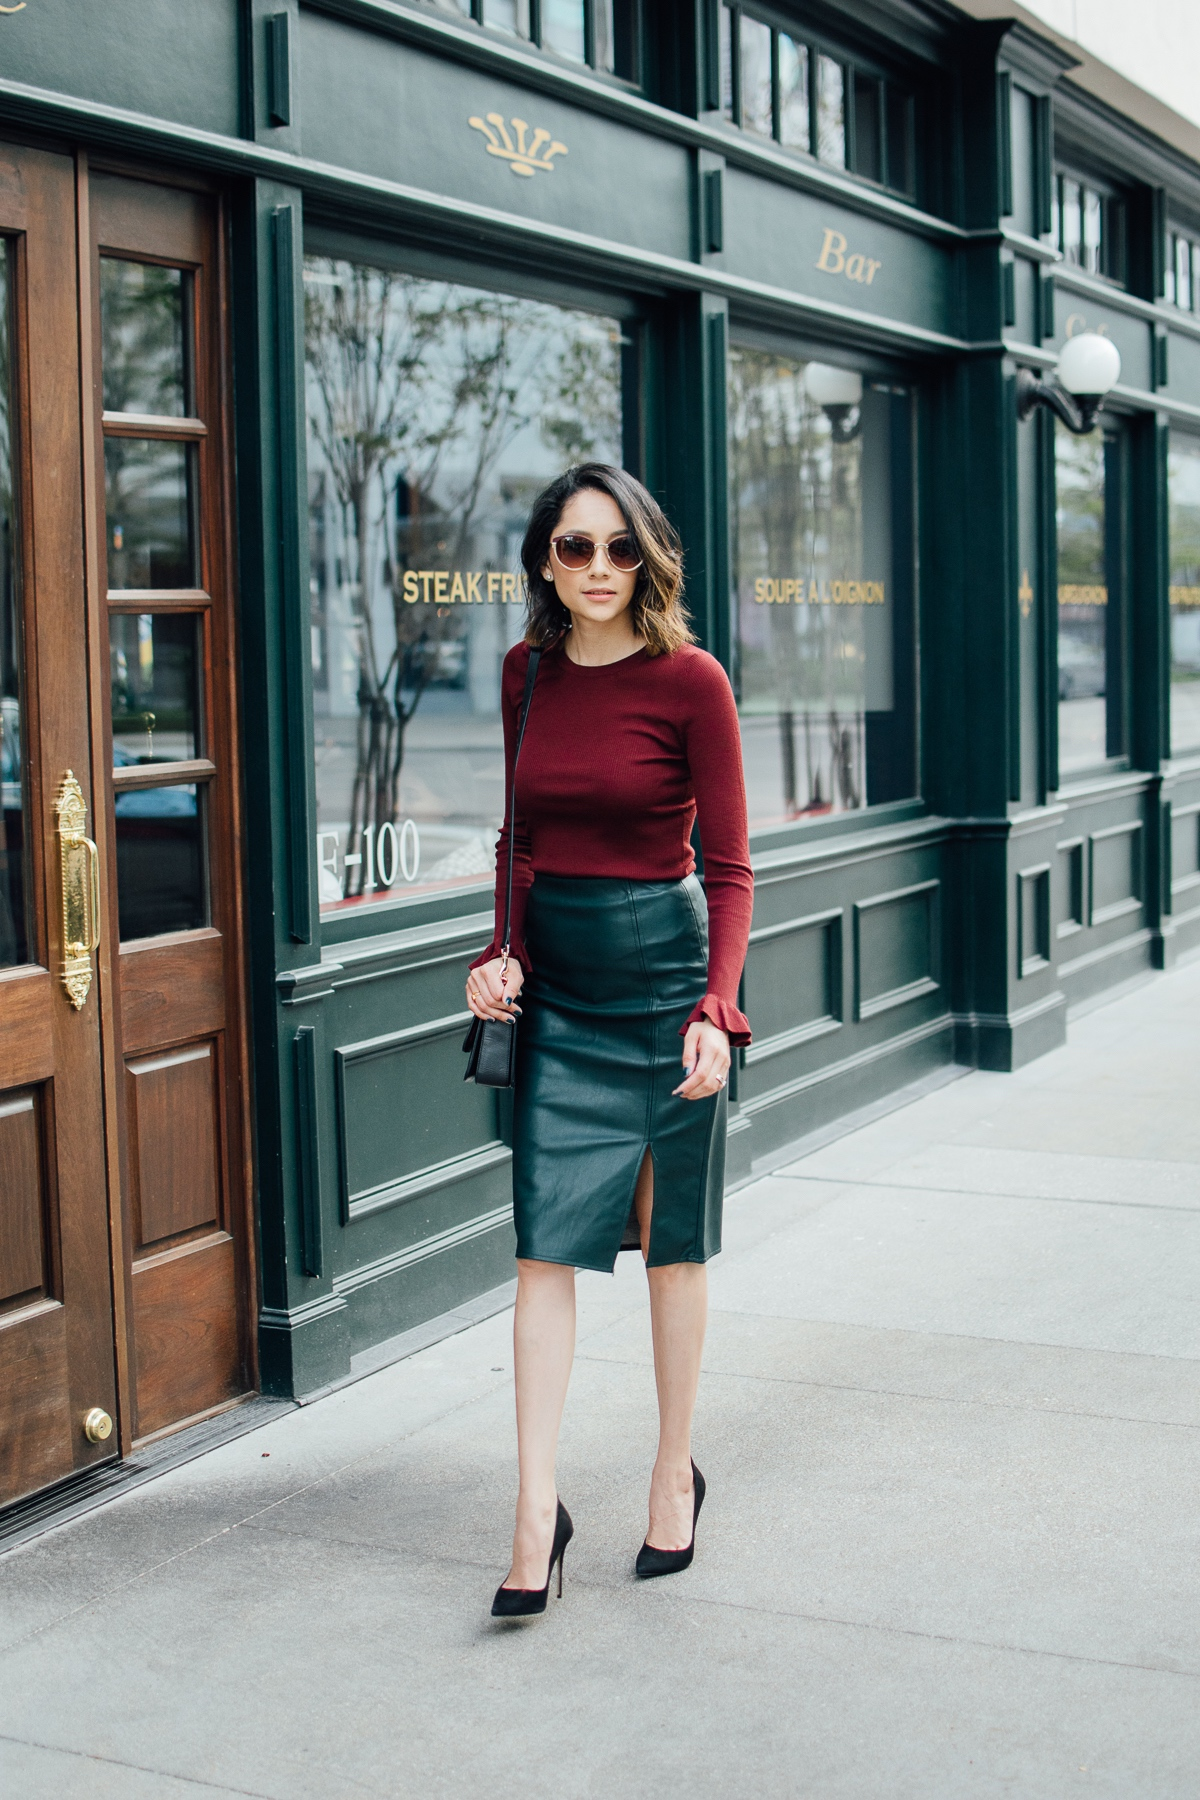 Houston style blogger Lilly Beltran wearing a vegan leather skirt, Burgundy sweater with bell sleeves and black pumps for a holiday ready look